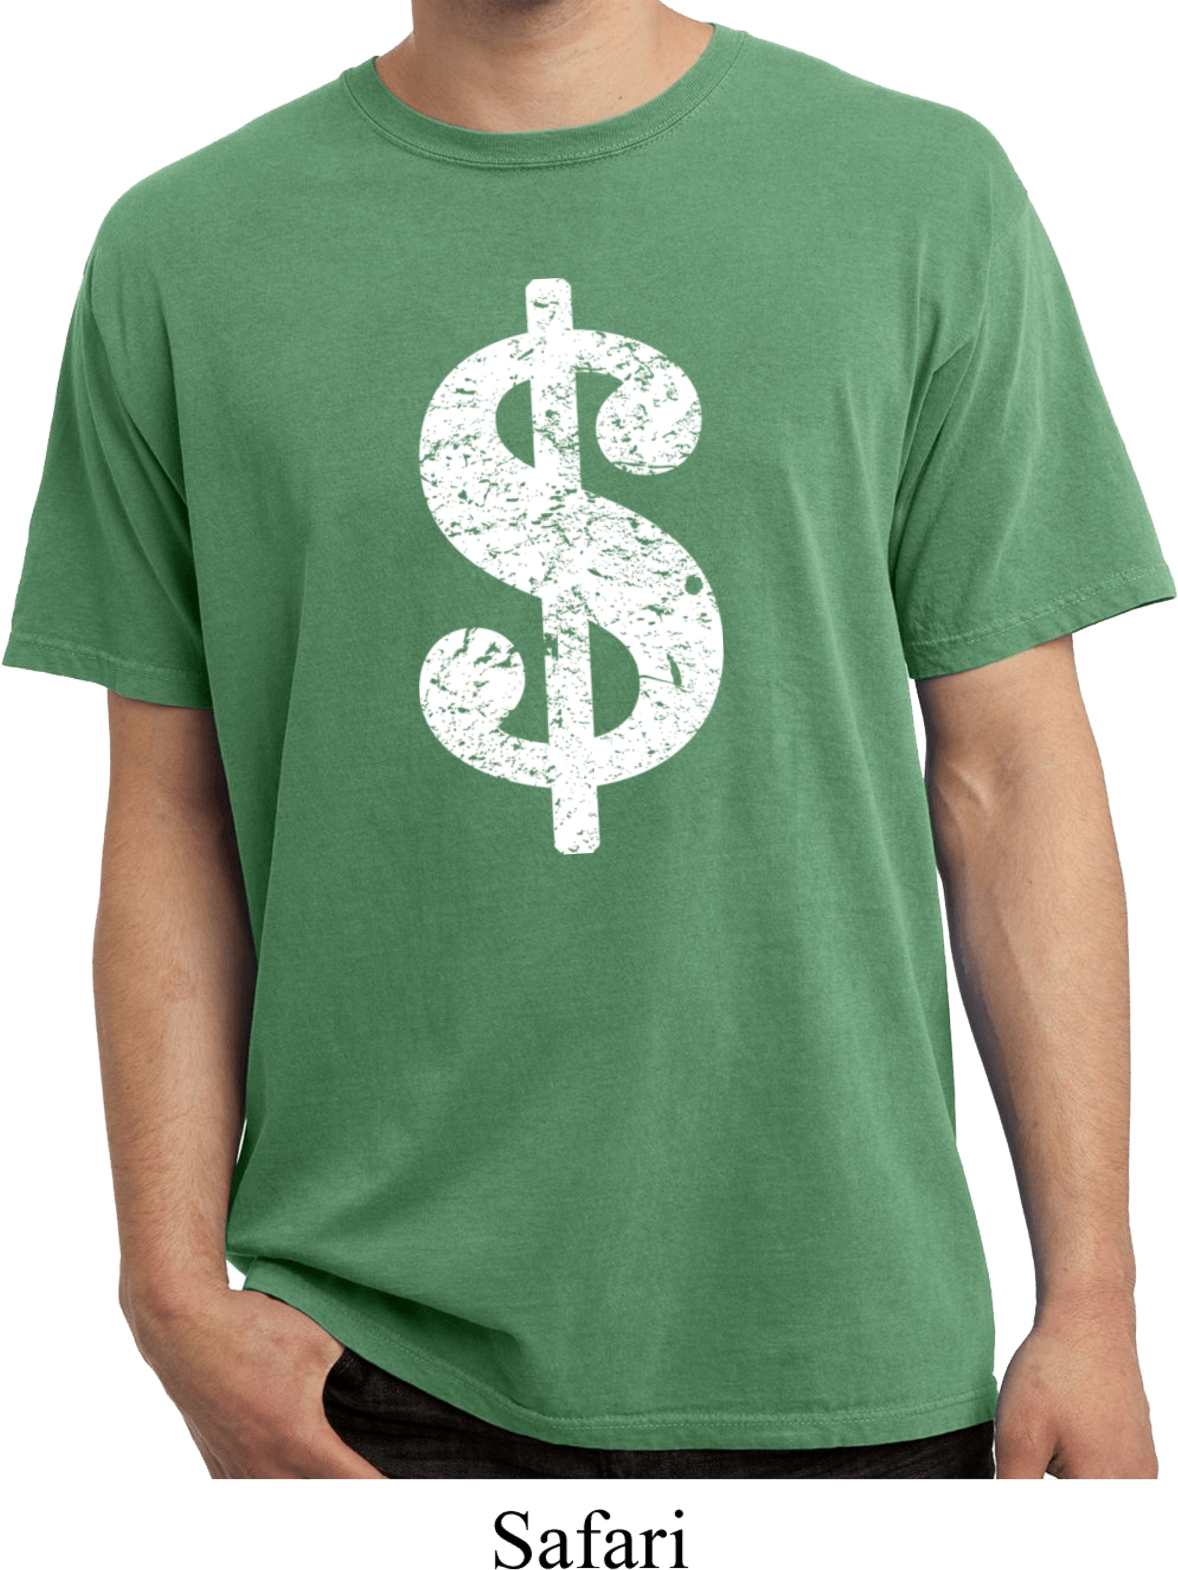 Funny shirt distressed dollar sign pigment dyed tee t for How to make a distressed shirt